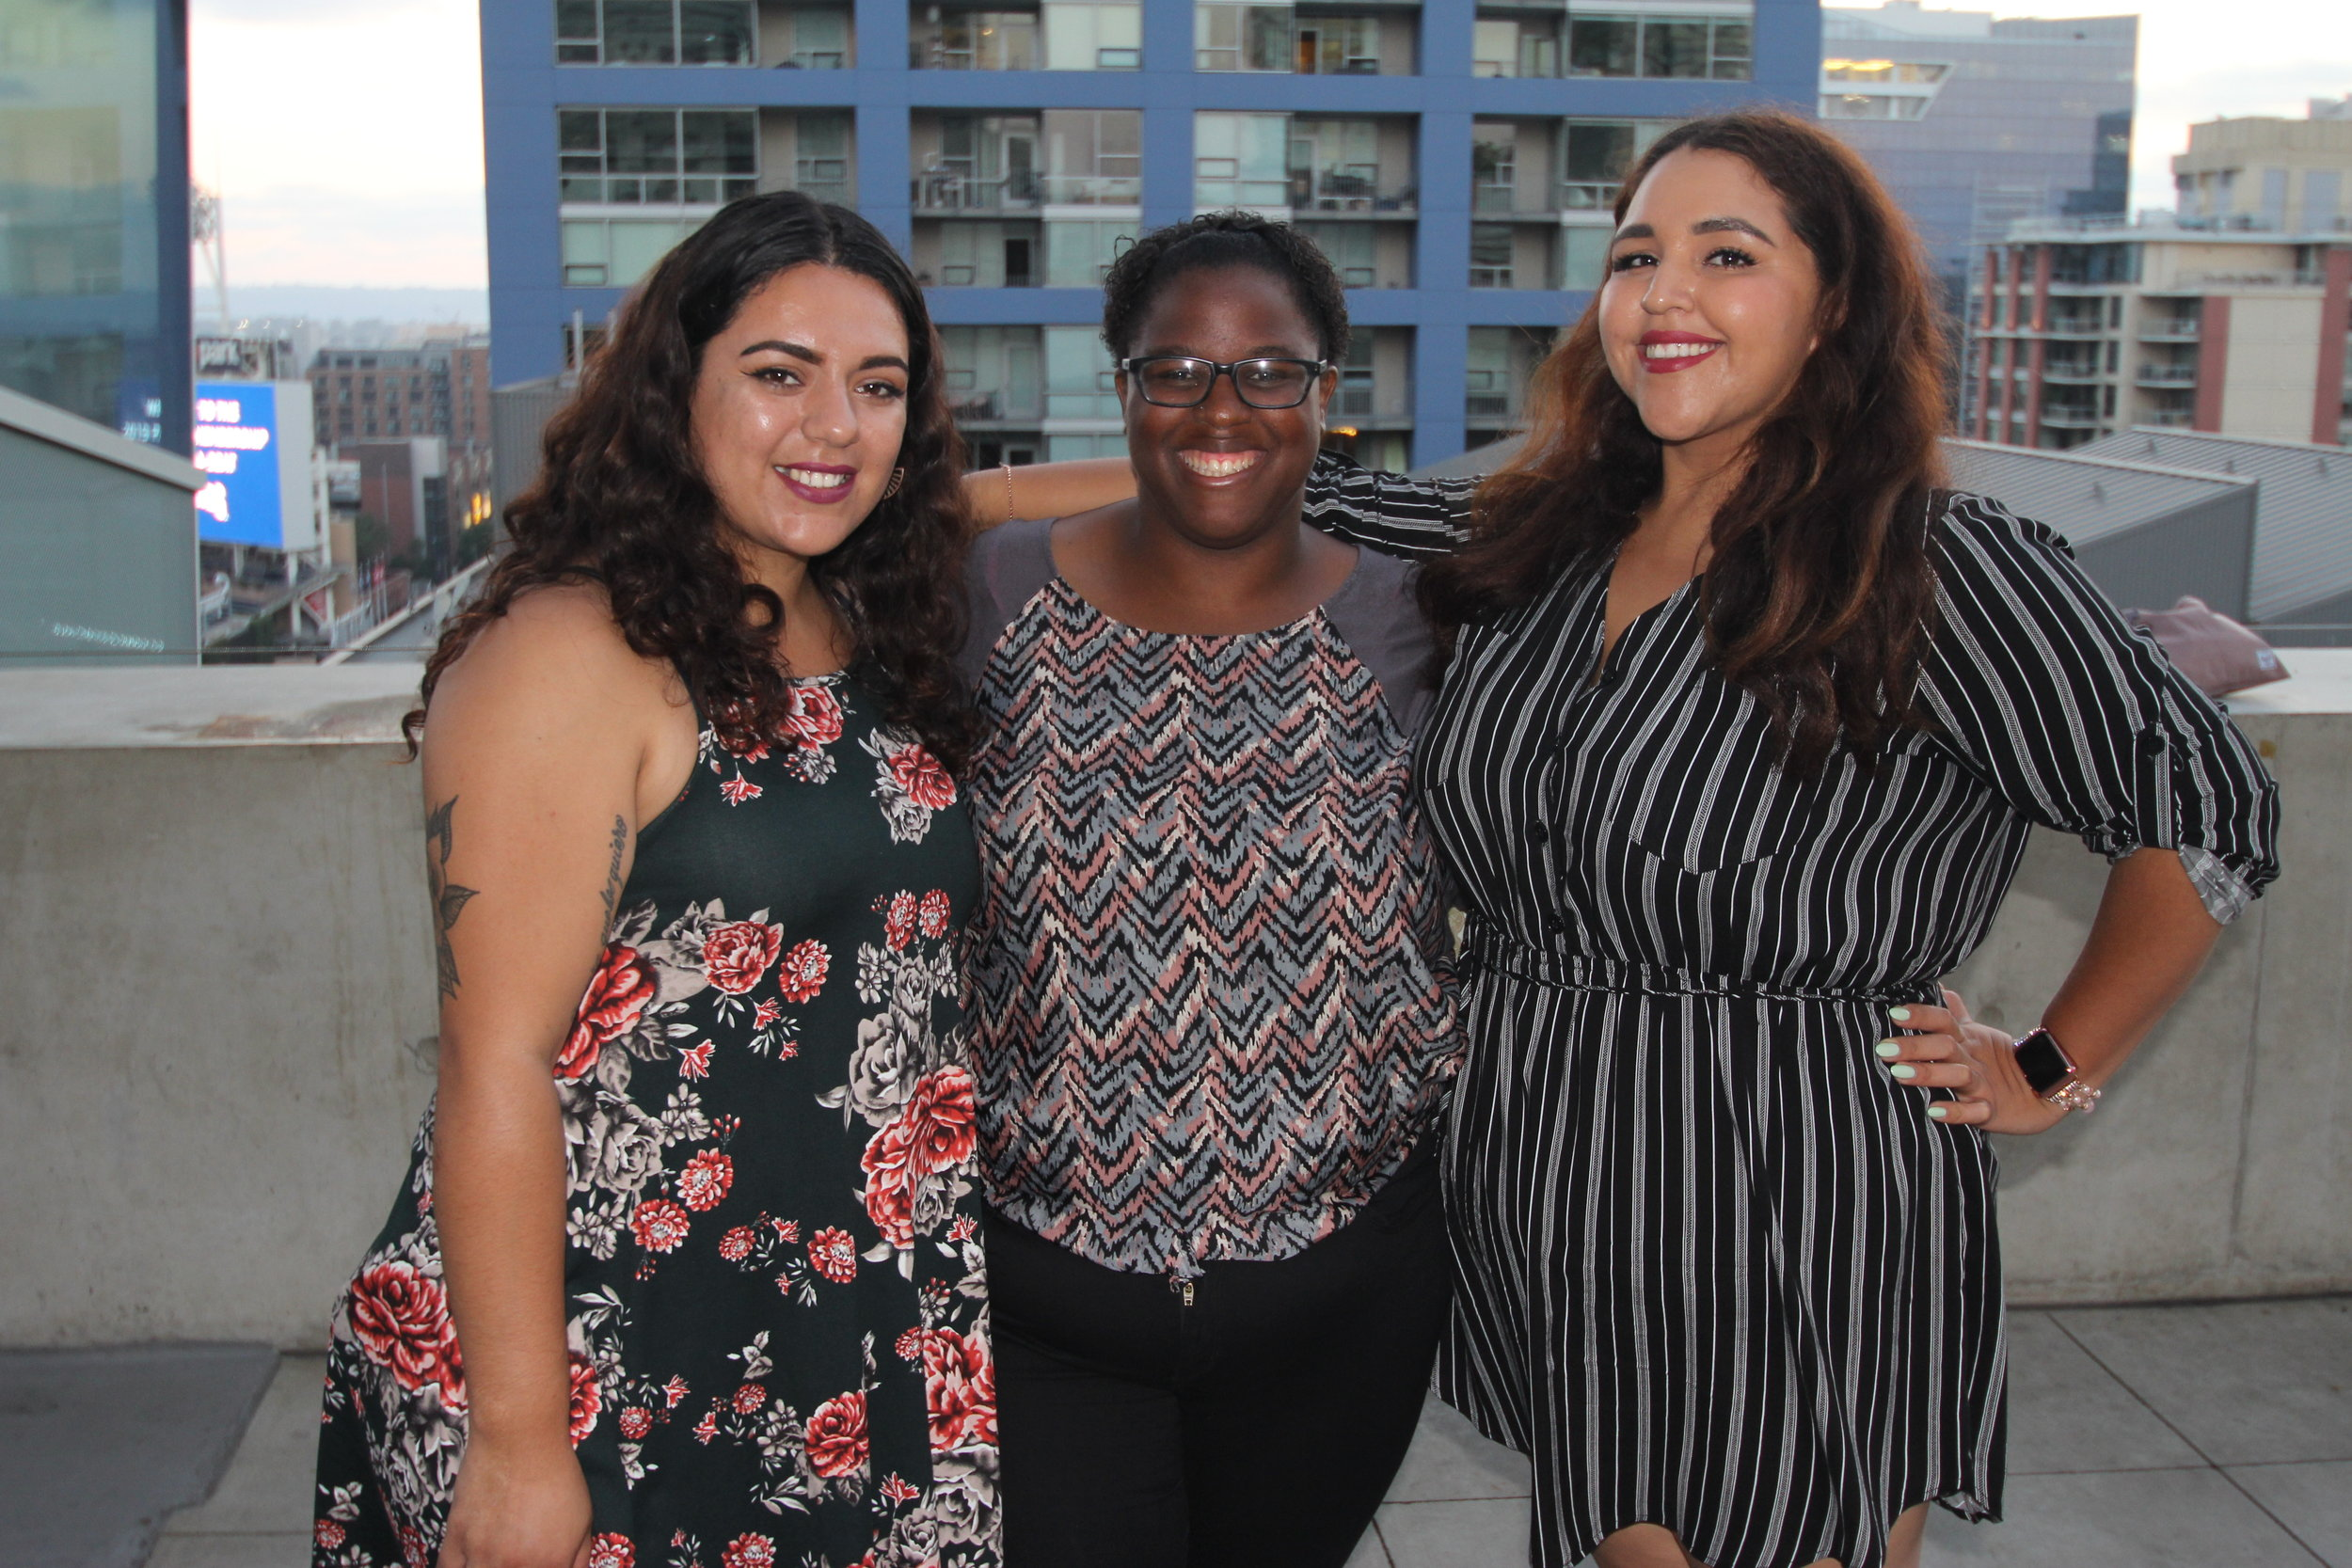 An image of three of our scholars, Zaphire, Domminiece, and Lexi, standing together at the 2018 Words Alive Westreich Scholarship Award Ceremony.